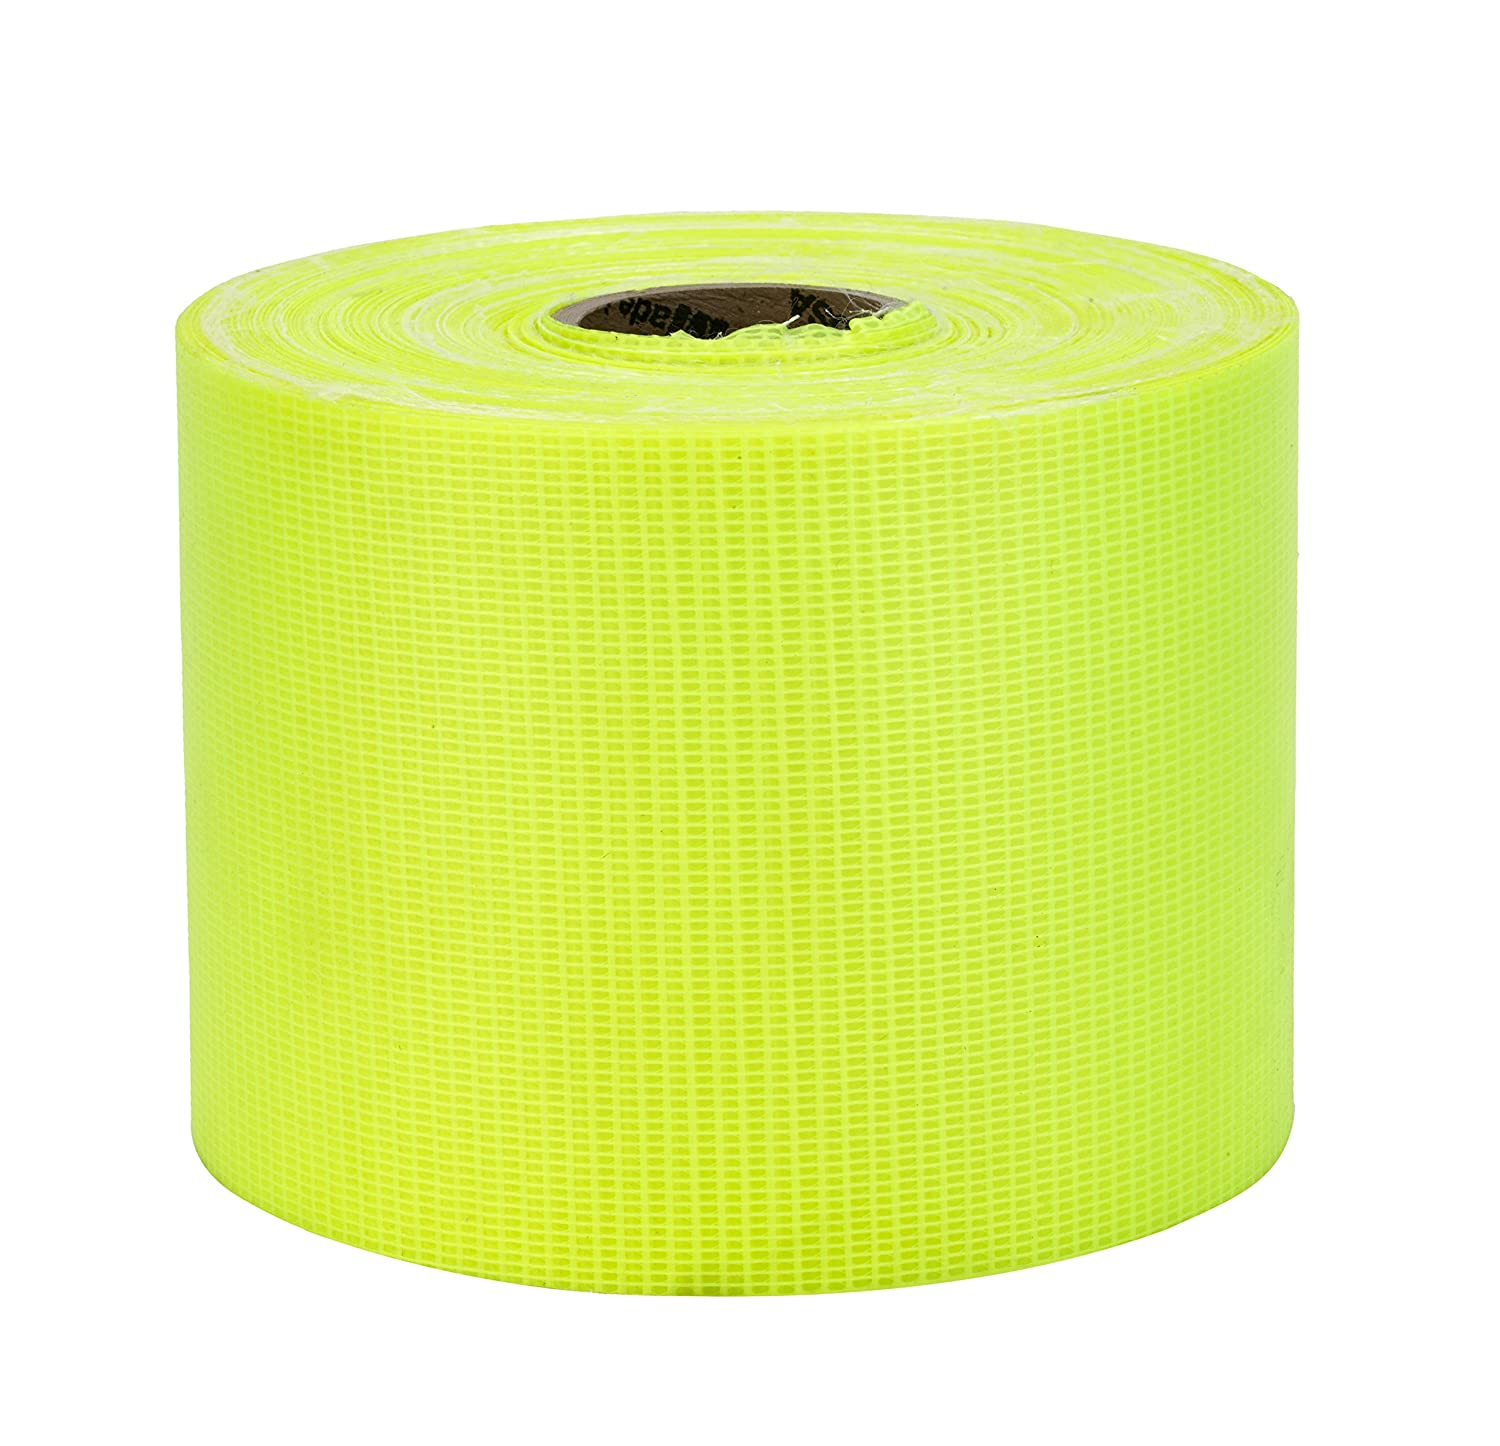 Mutual Industries 17772-139-4000 Vinyl Coated Nylon Reinforced Fluorescent Barricade Tape, 4